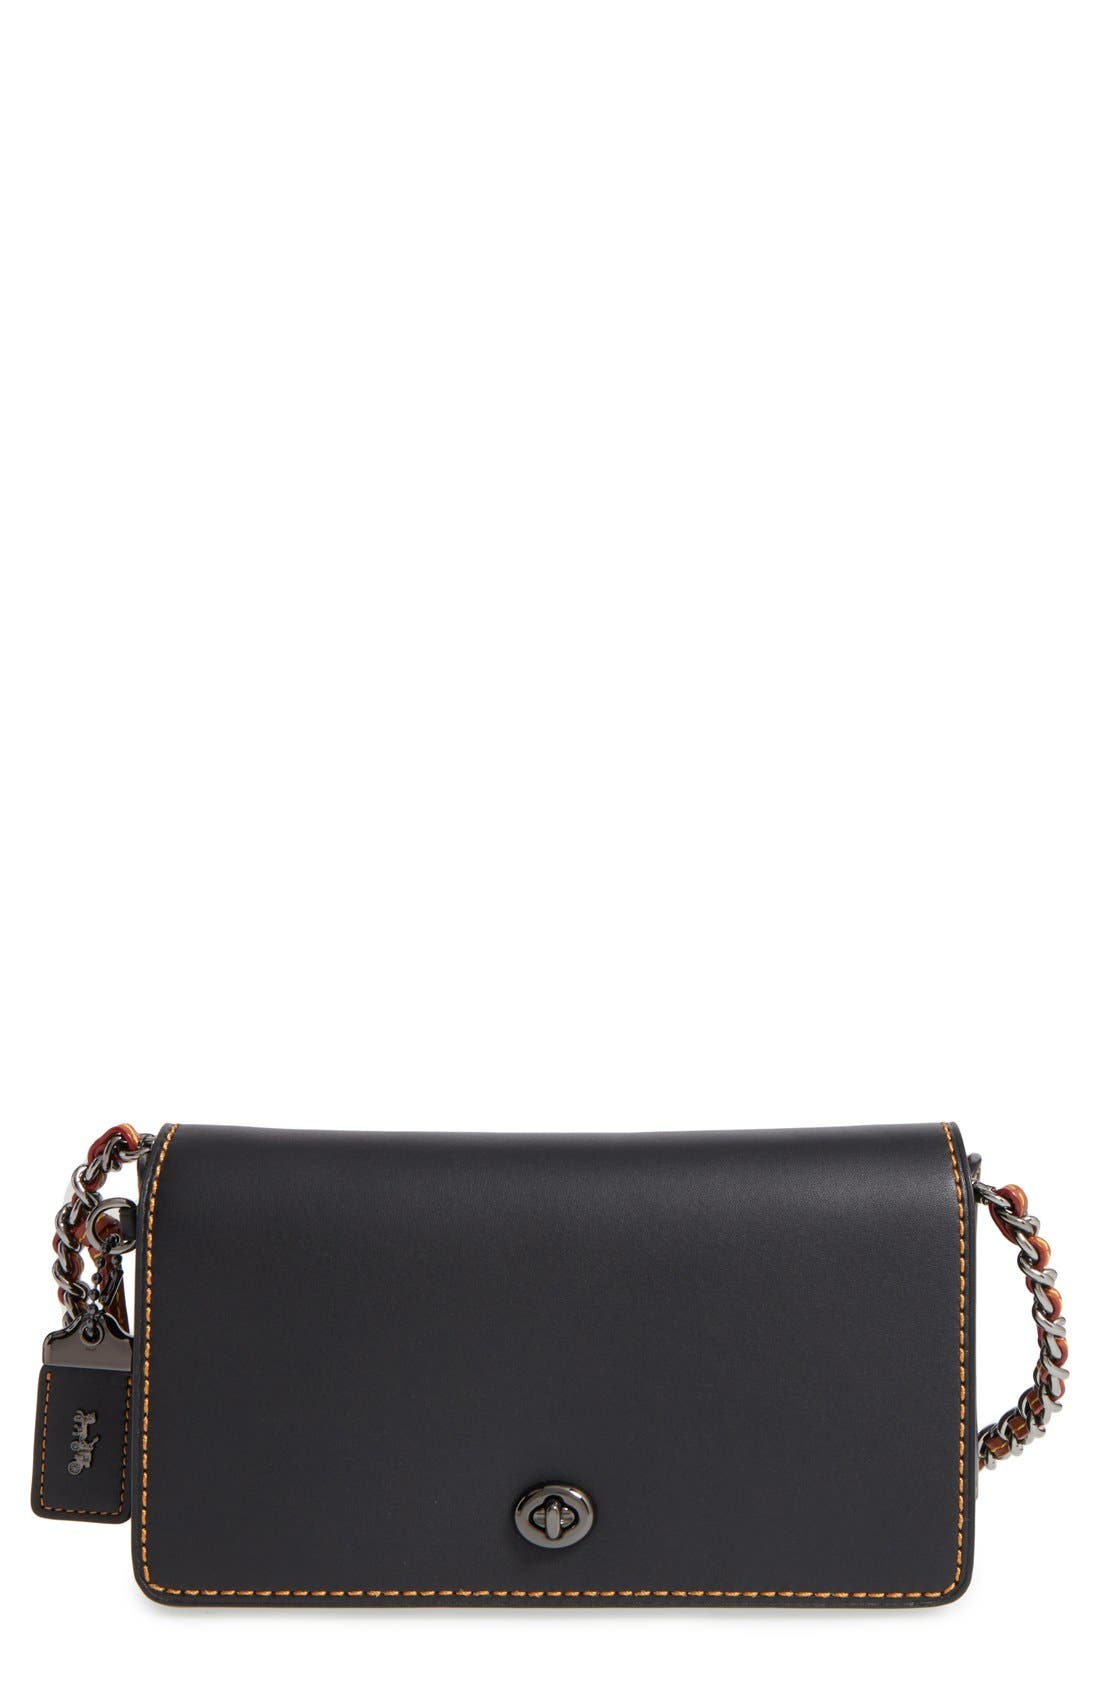 Alternate Image 1 Selected - COACH 1941 'Dinky' Leather Crossbody Bag